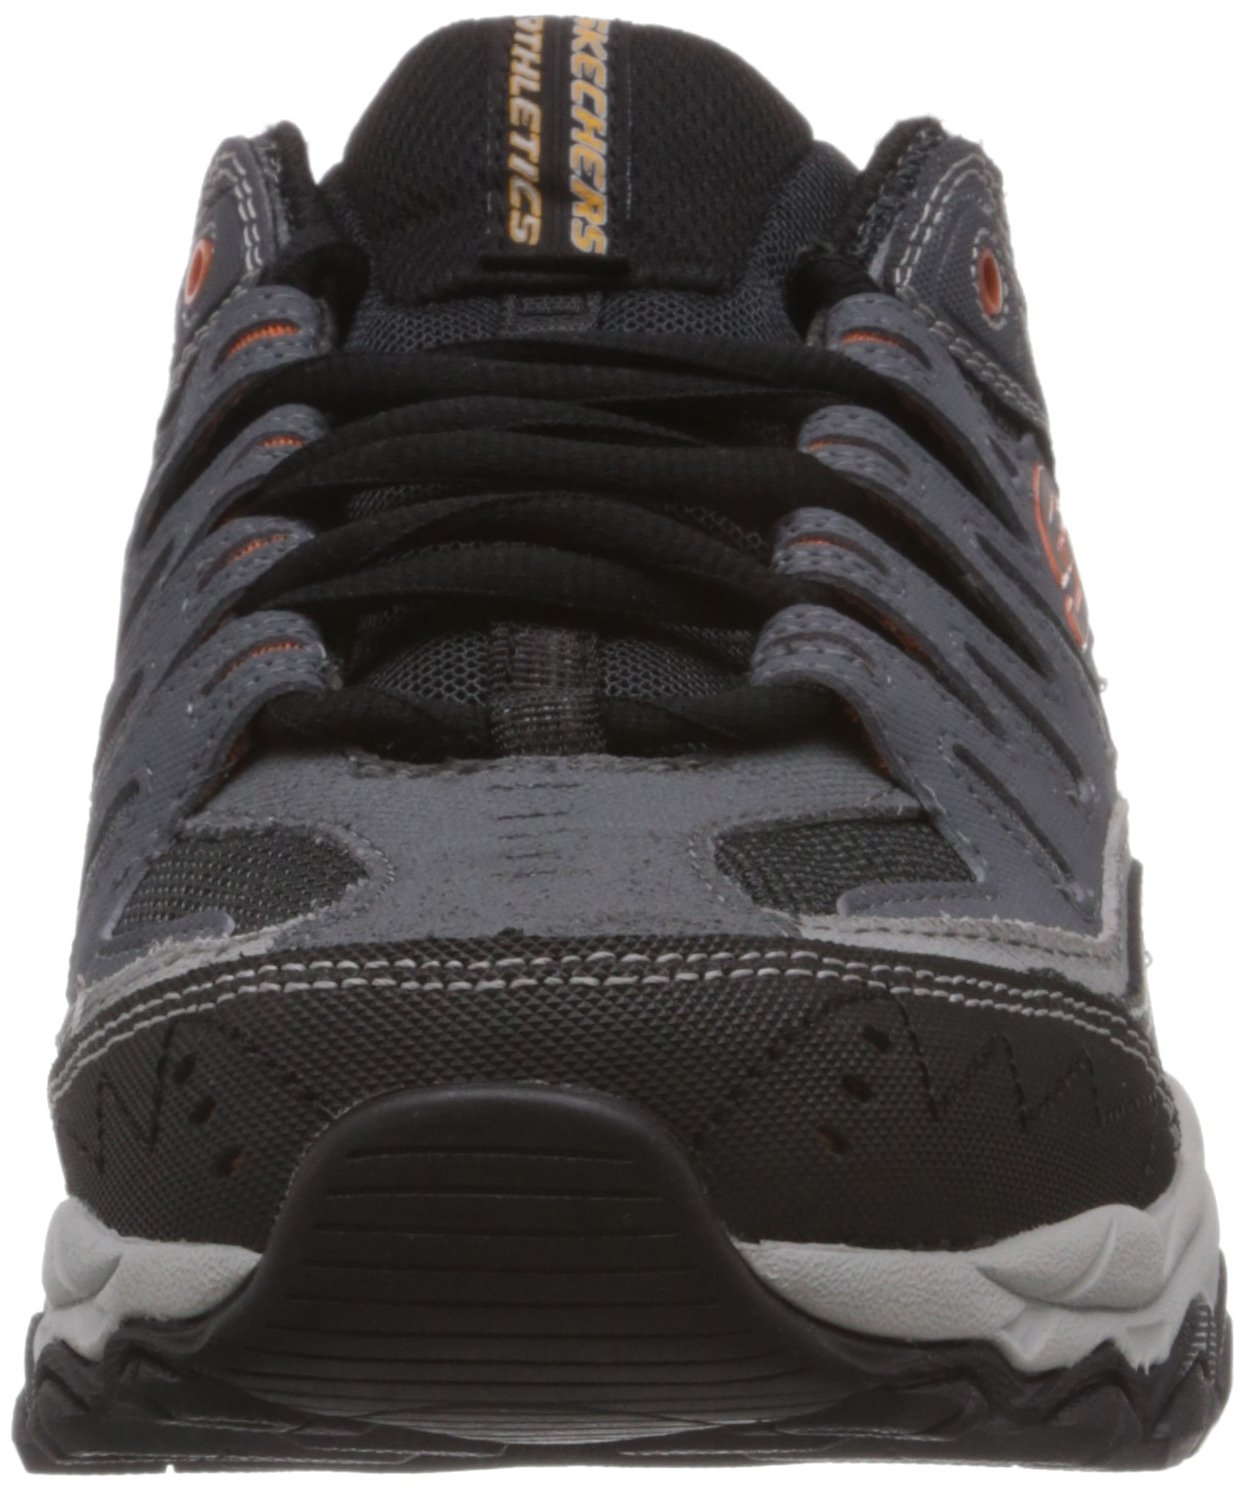 Skechers Sport Men's Afterburn Memory Foam Lace-Up Sneaker, Charcoal, 7 M US by Skechers (Image #4)